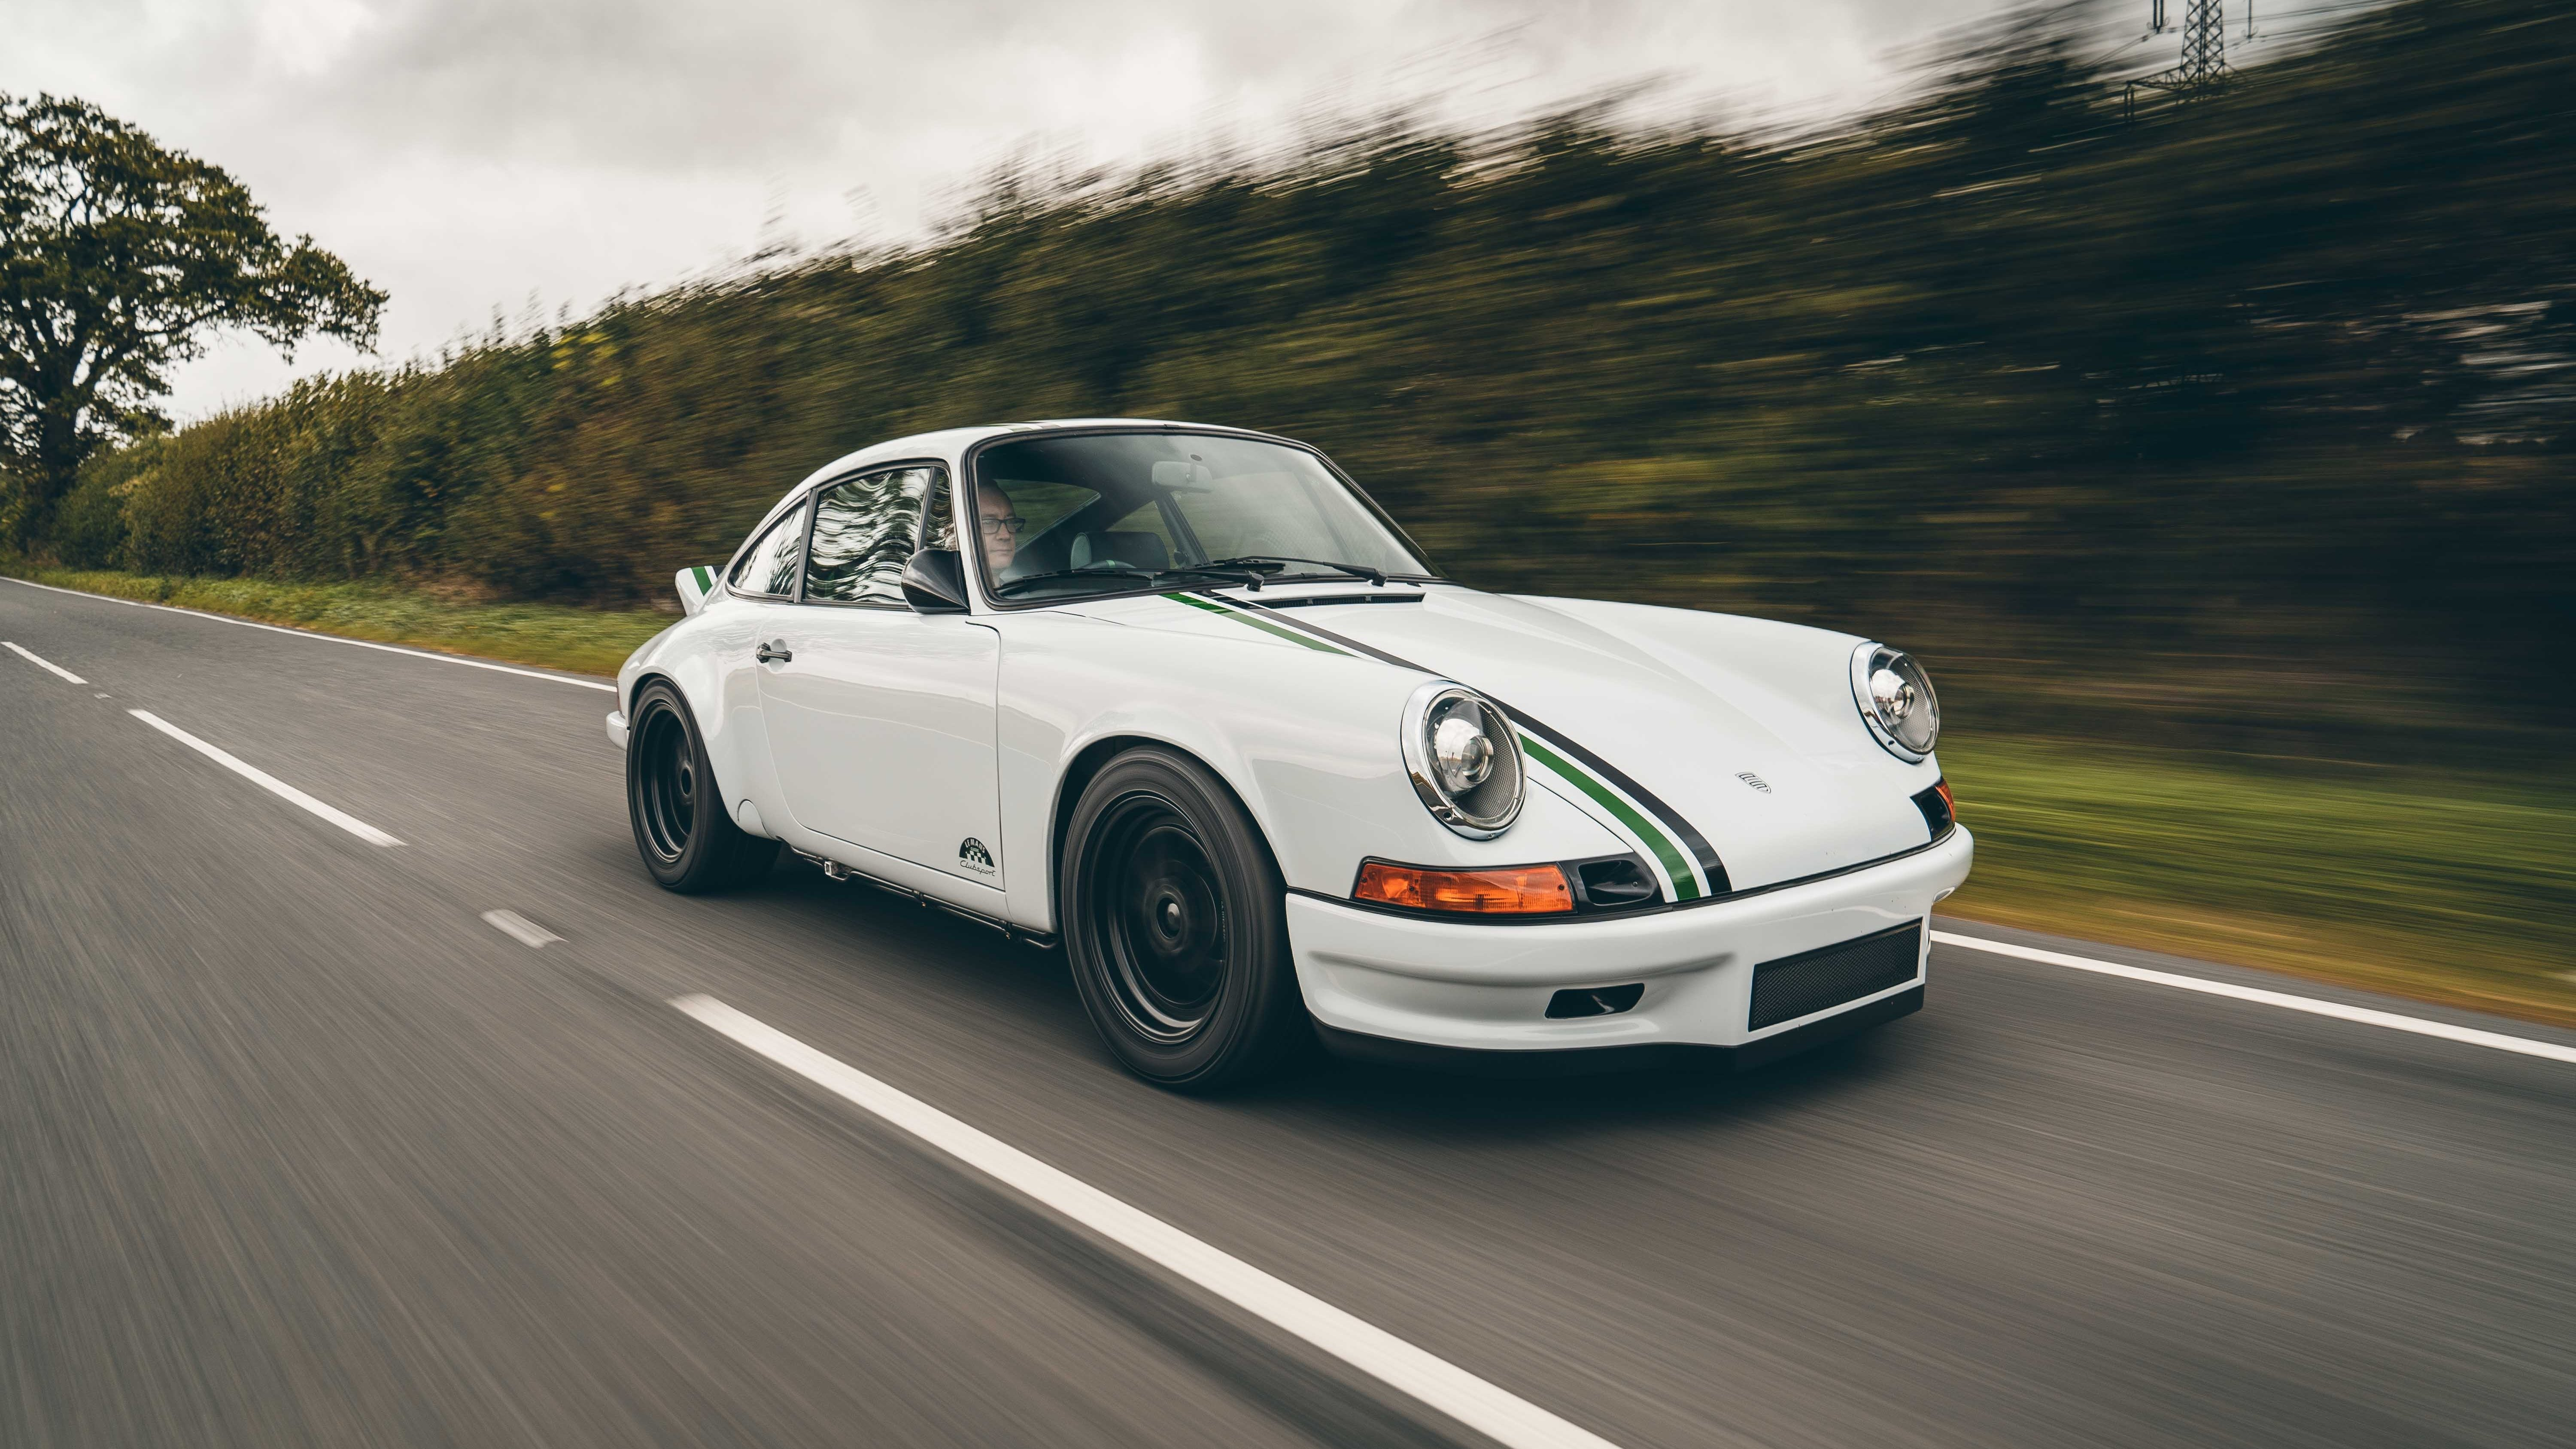 23b19cc0dfa Porsche specialist Paul Stephens recently unveiled his latest creation  called the Le Mans Classic Clubsport. It is a bespoke Porsche 911 based  around the ...